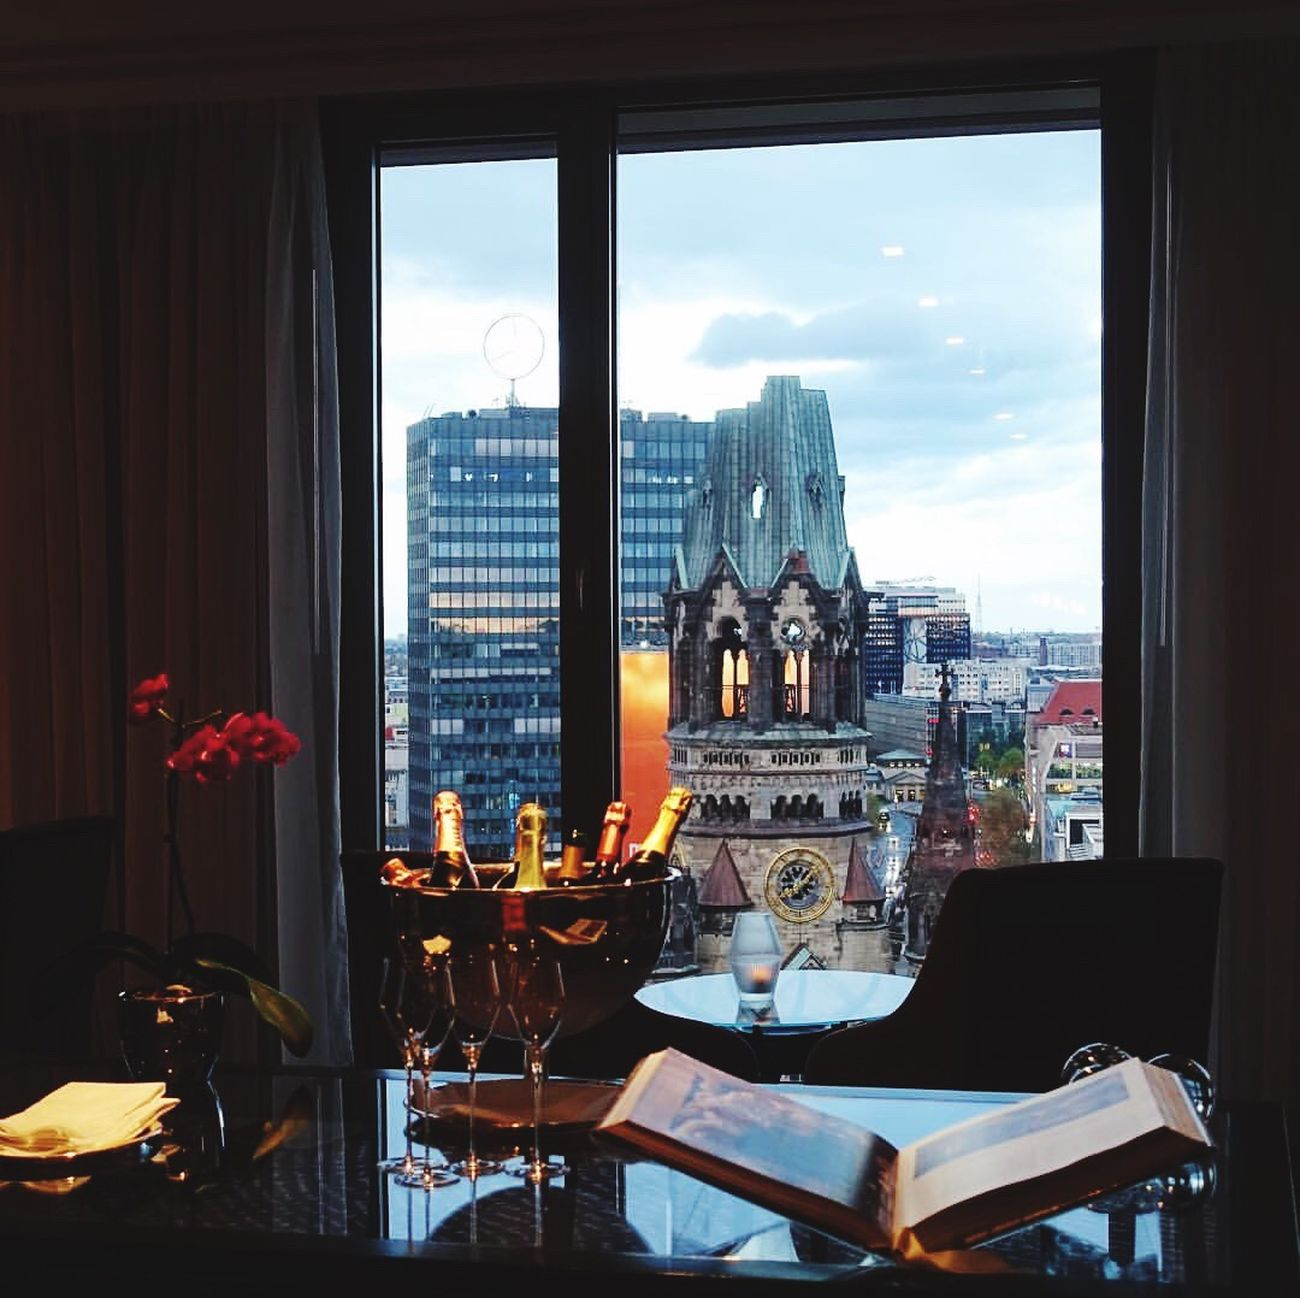 Berlin Waldorf Astoria Window Indoors  Table Day Home Interior Built Structure No People Sky Architecture Luxury Hotel Cityscape